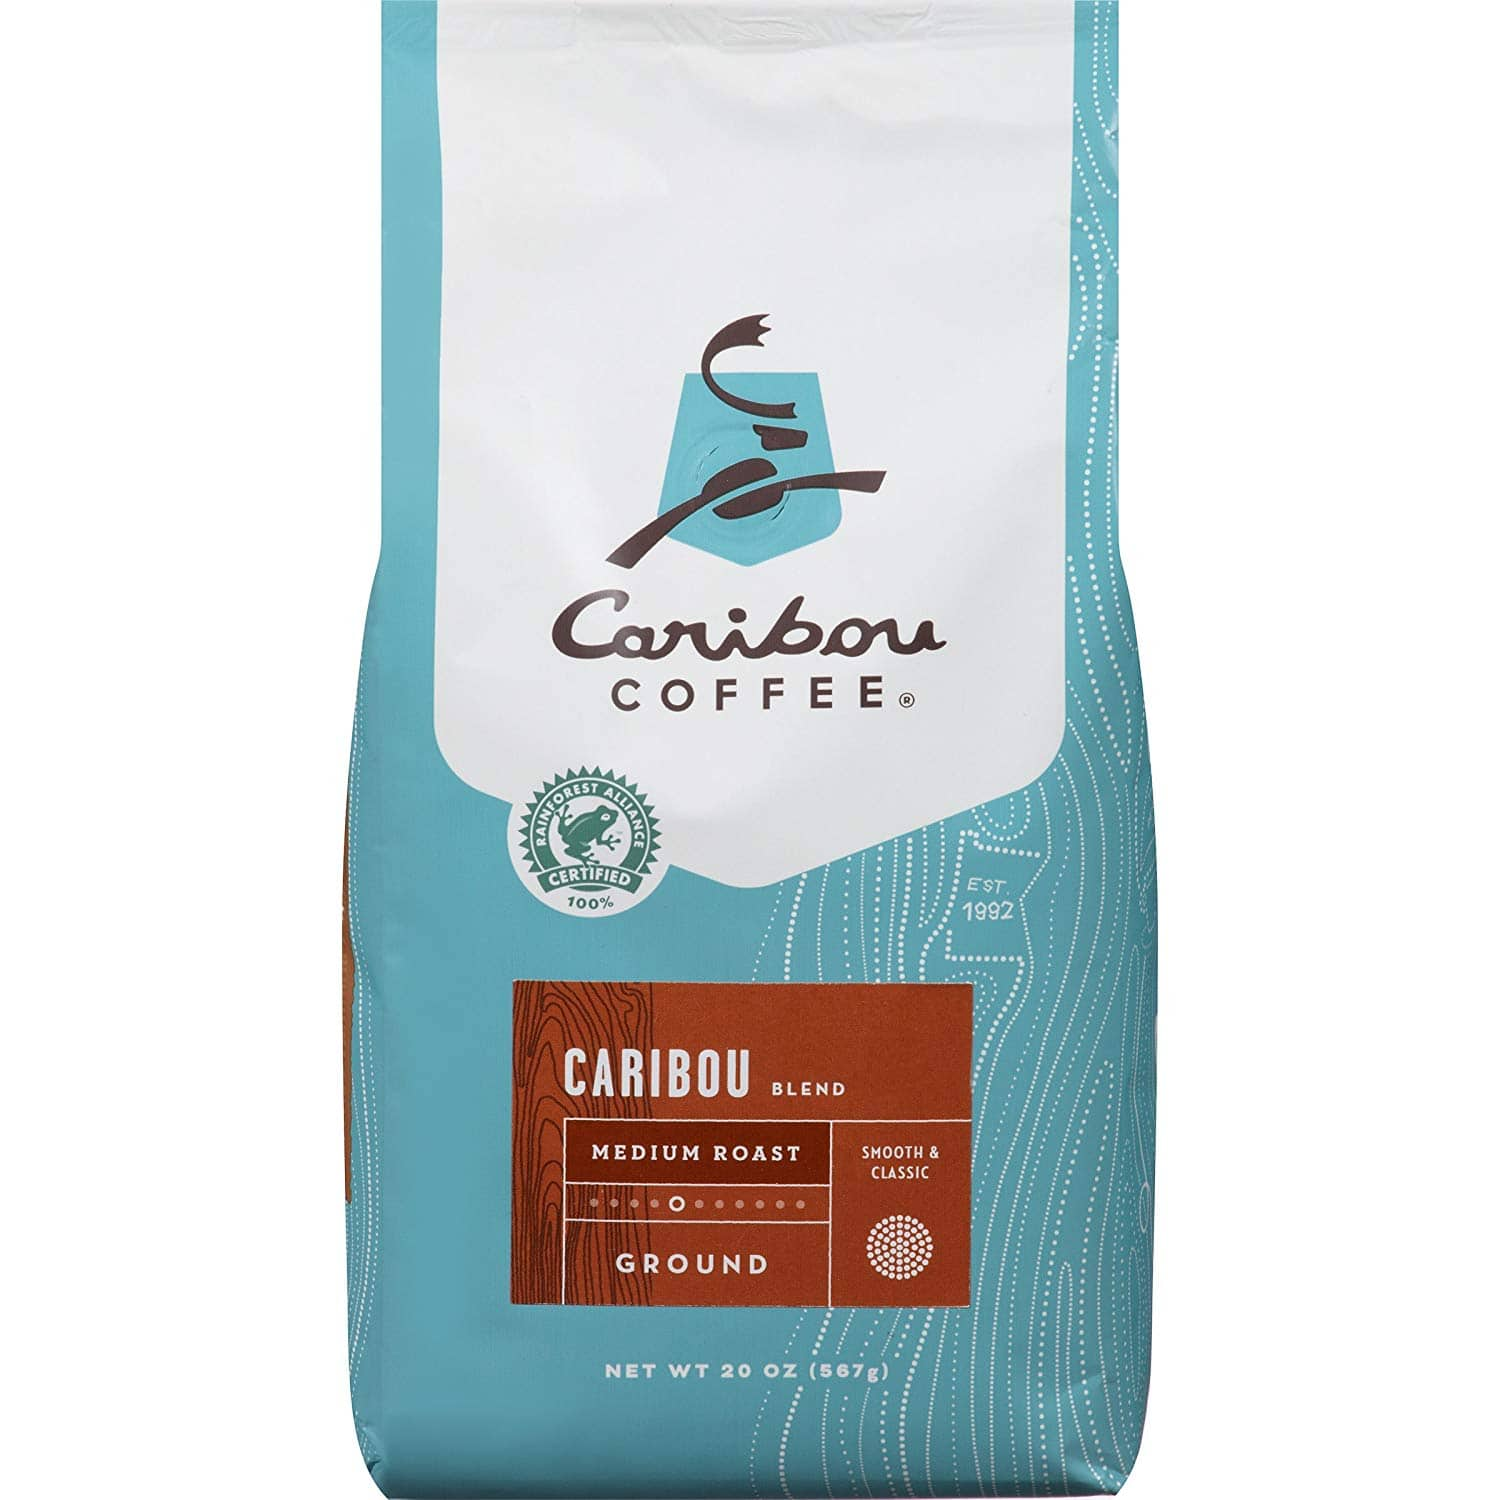 20-Ounce Caribou Coffee Caribou Blend Medium Roast Ground Coffee (Expires 05/20) $4.83 + Free Prime Shipping